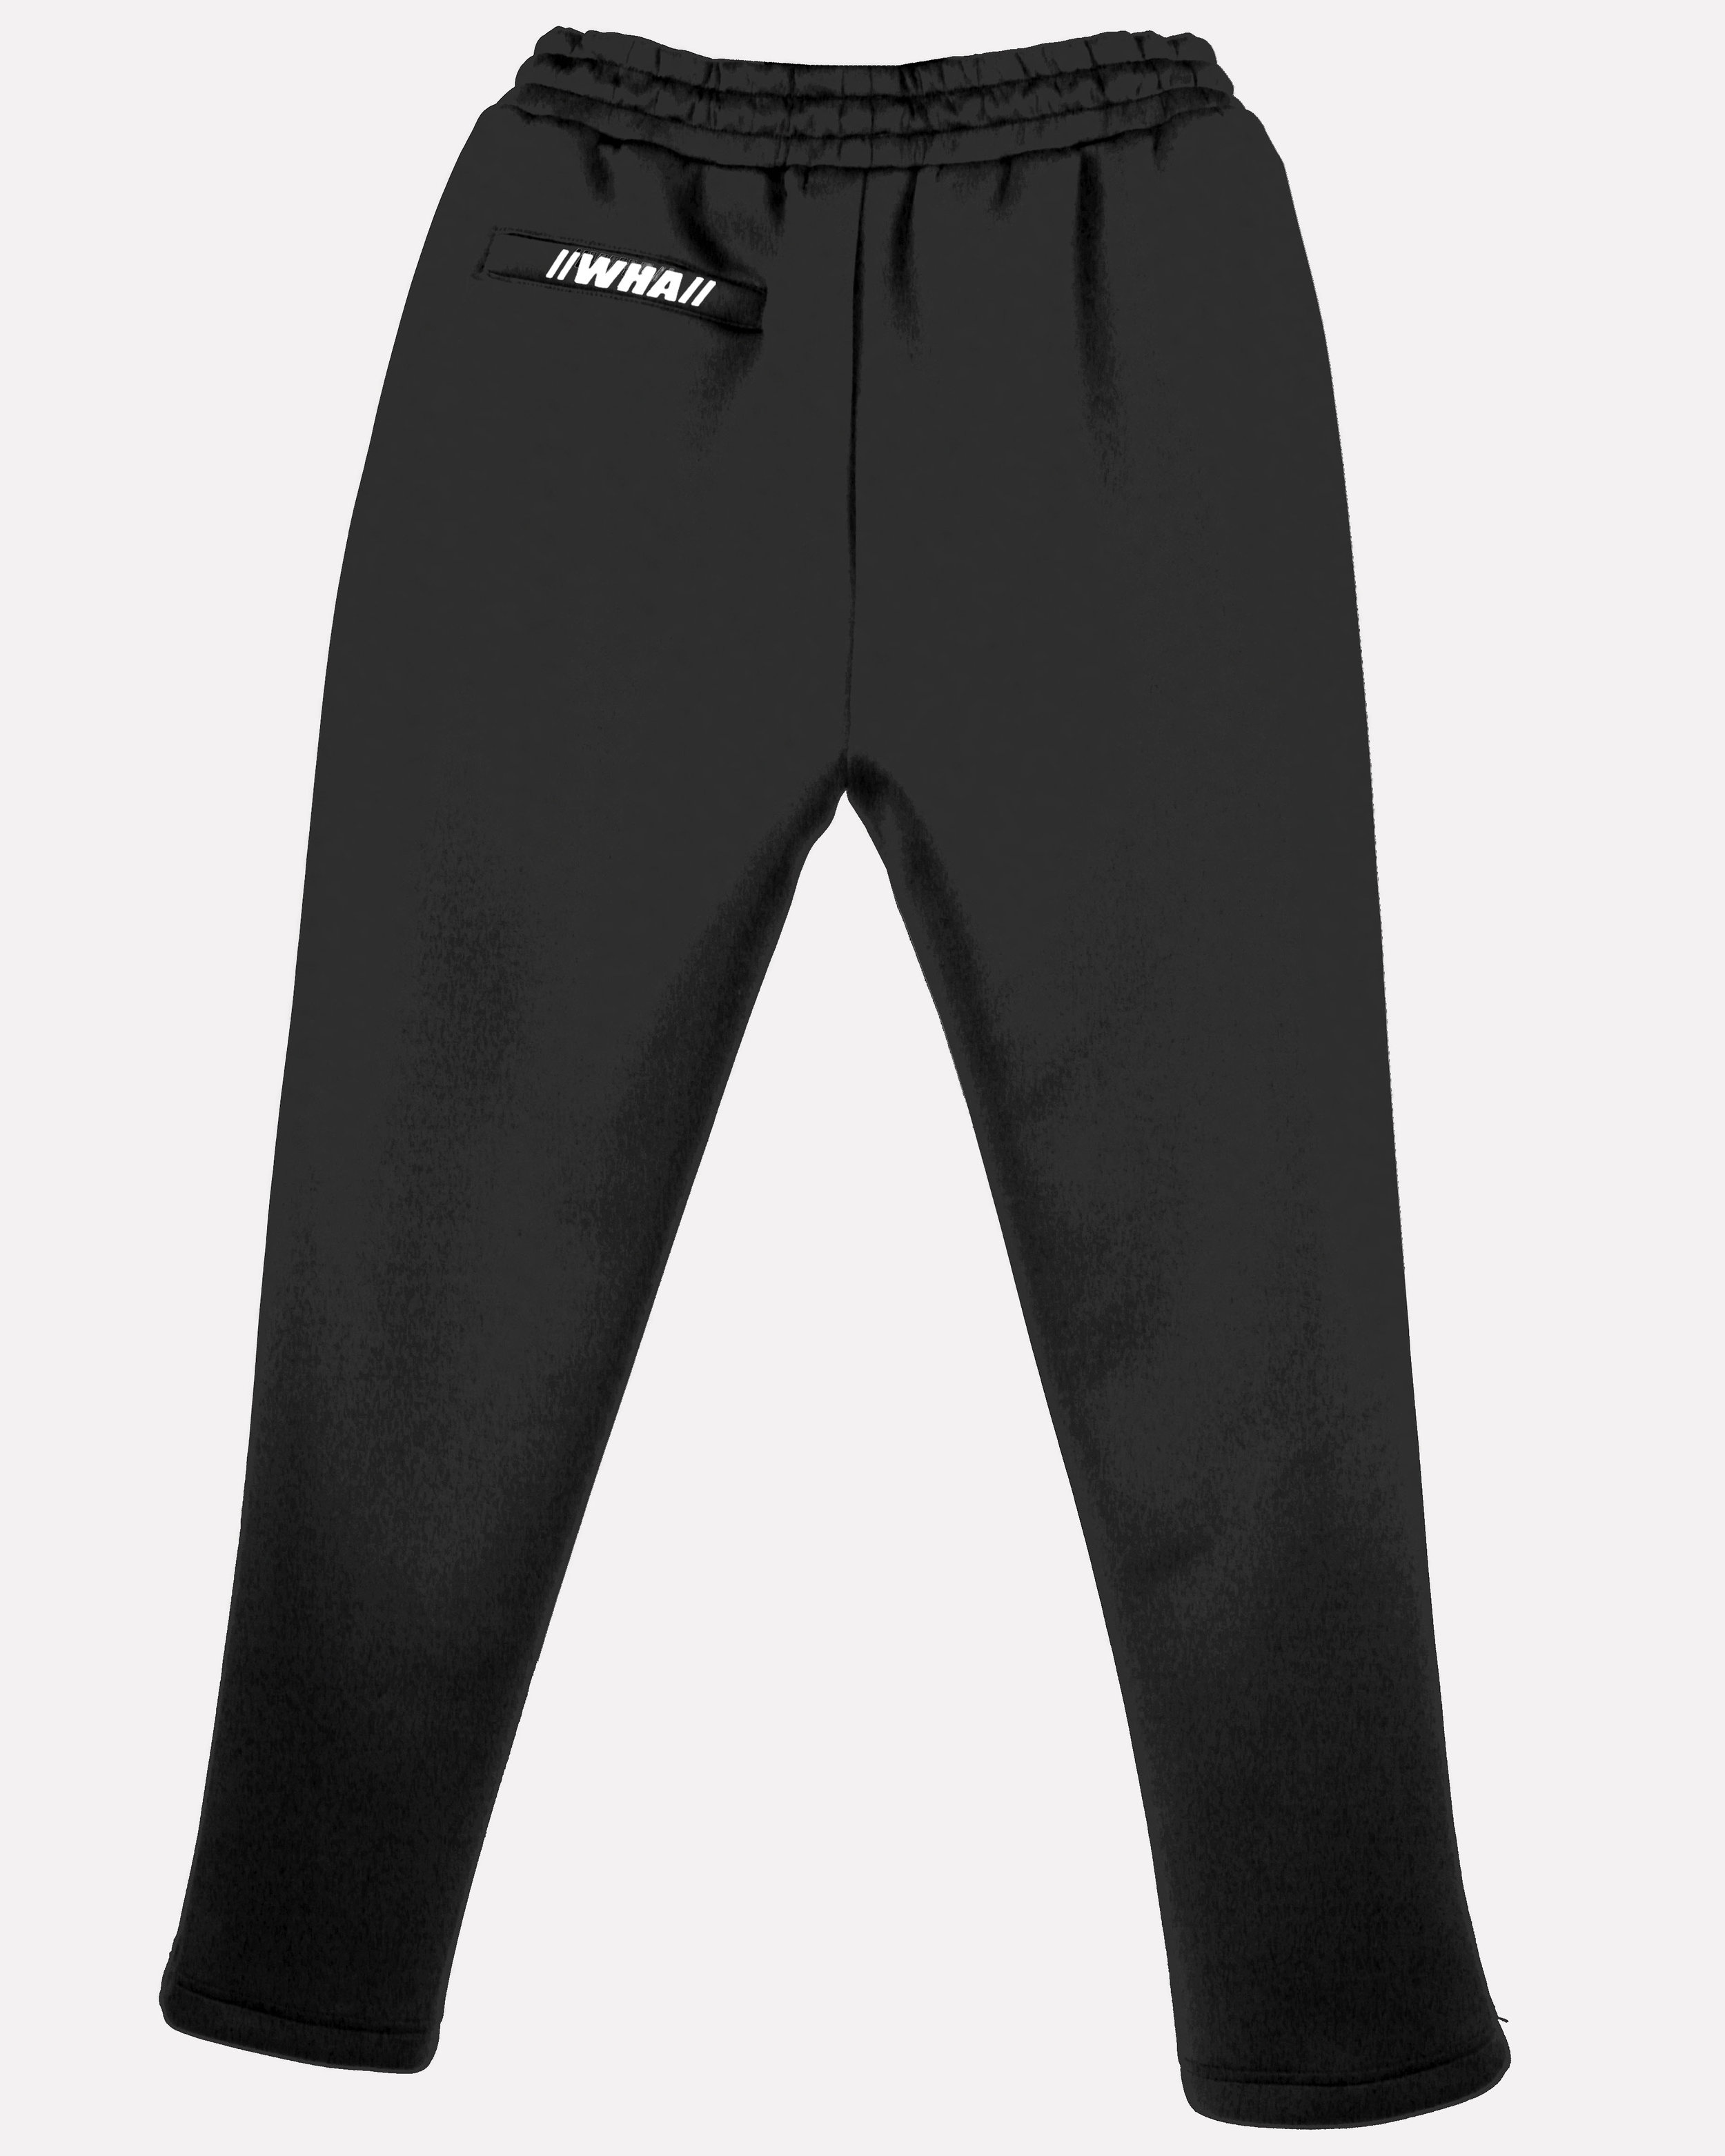 Pants Back Black 2.jpg